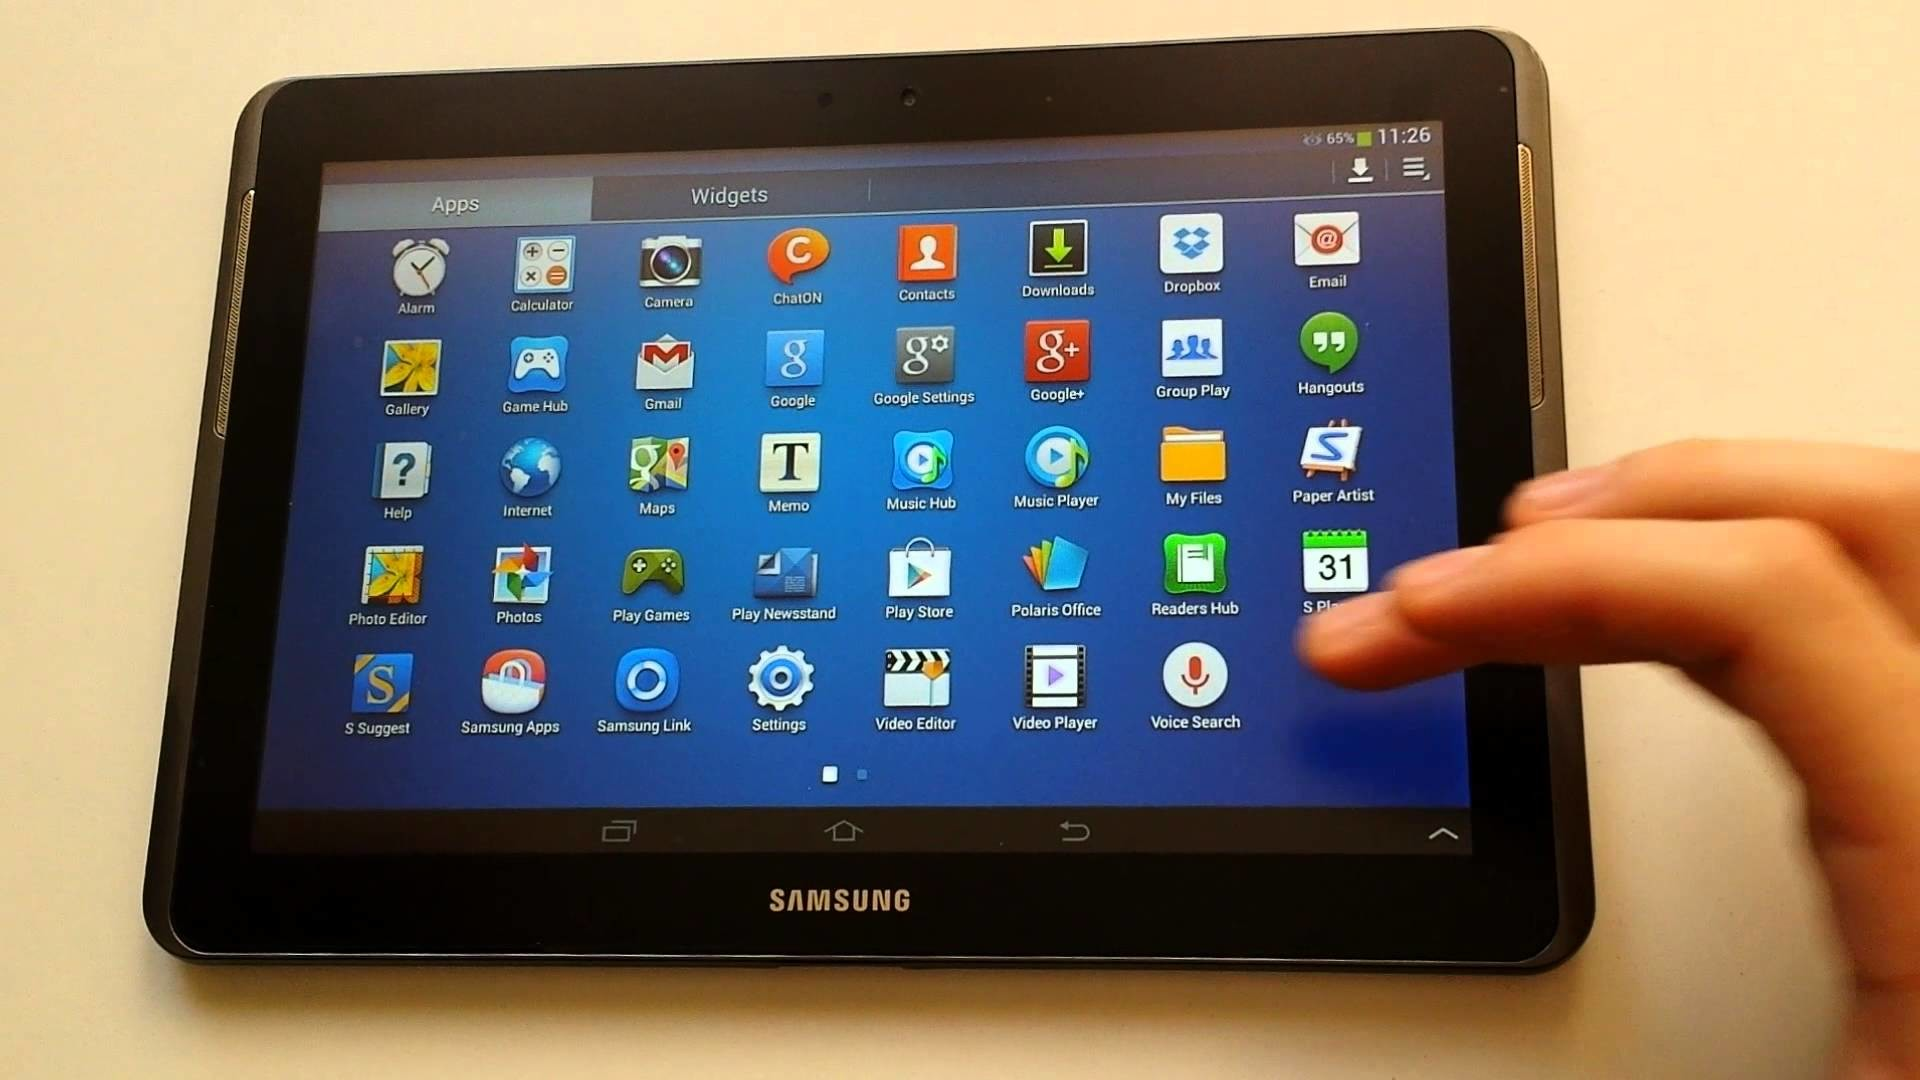 1920x1080 Samsung galaxy tab 2 10.1 GT-p5110 - Android update 4.2.2 official - YouTube